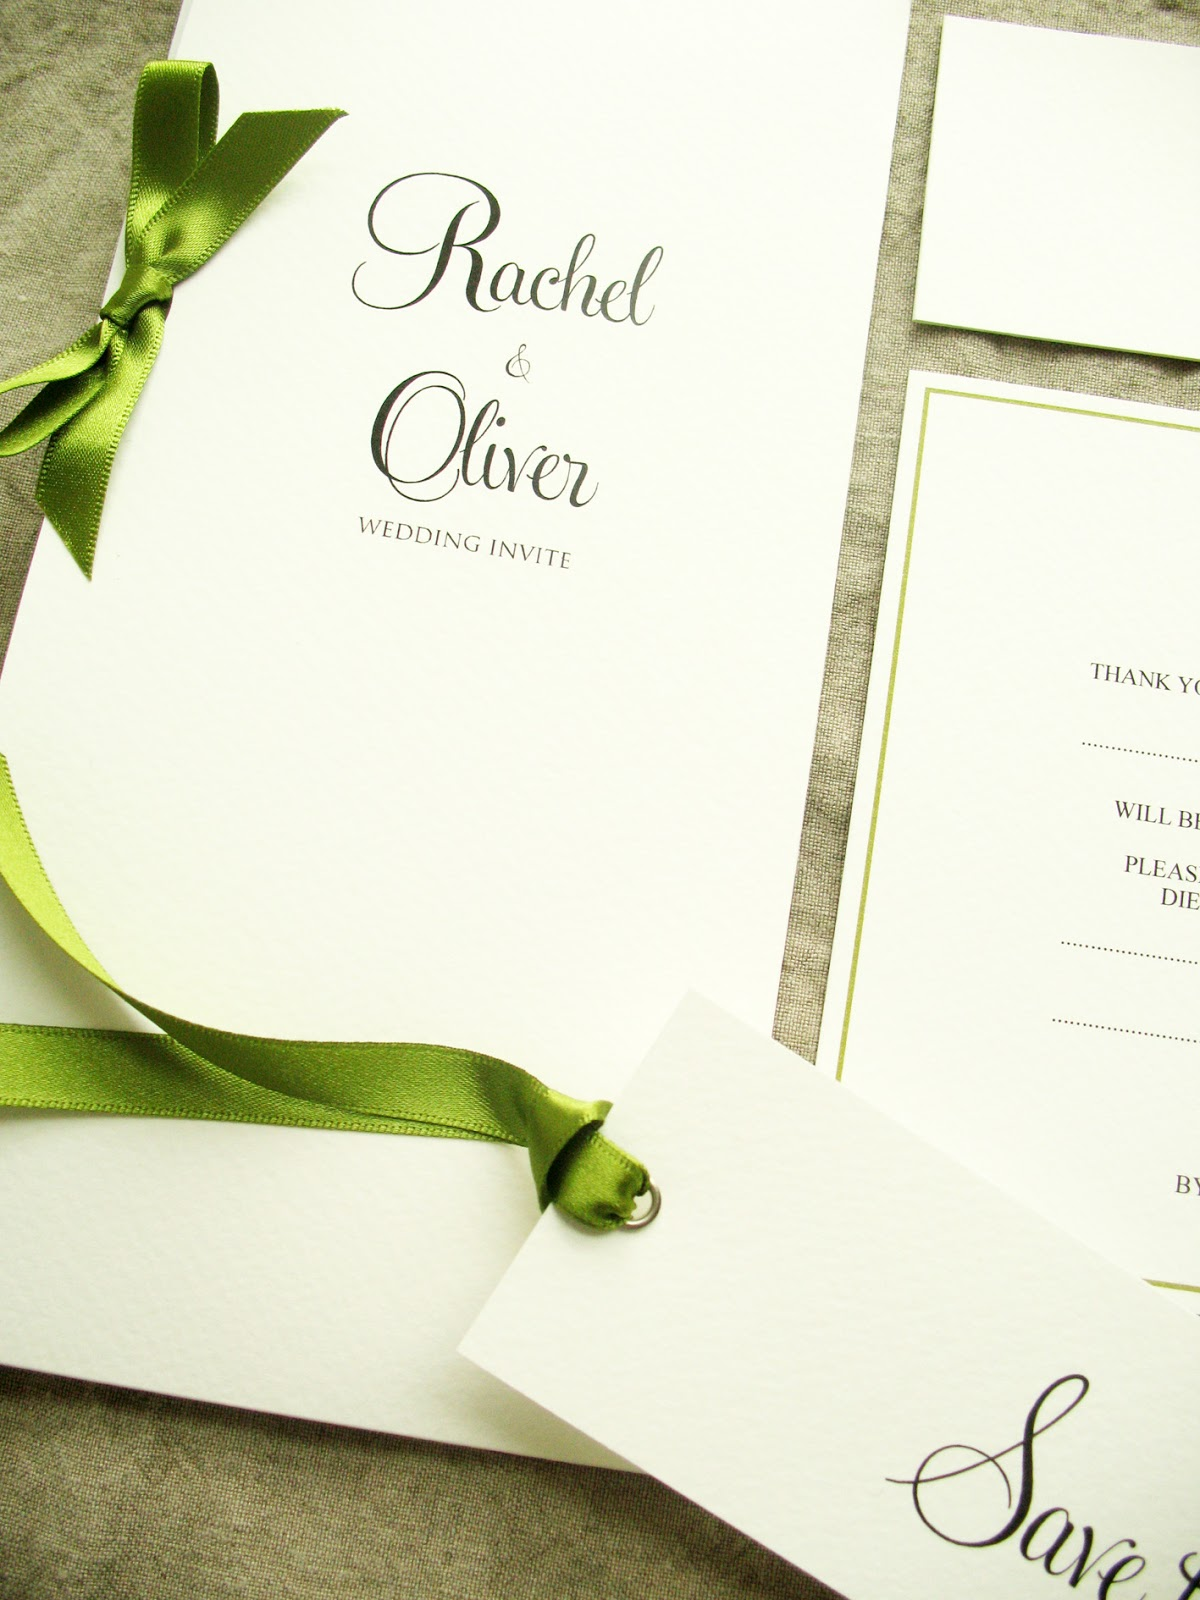 Inspiration for weddings, invitations and stationery: Using Moss ...